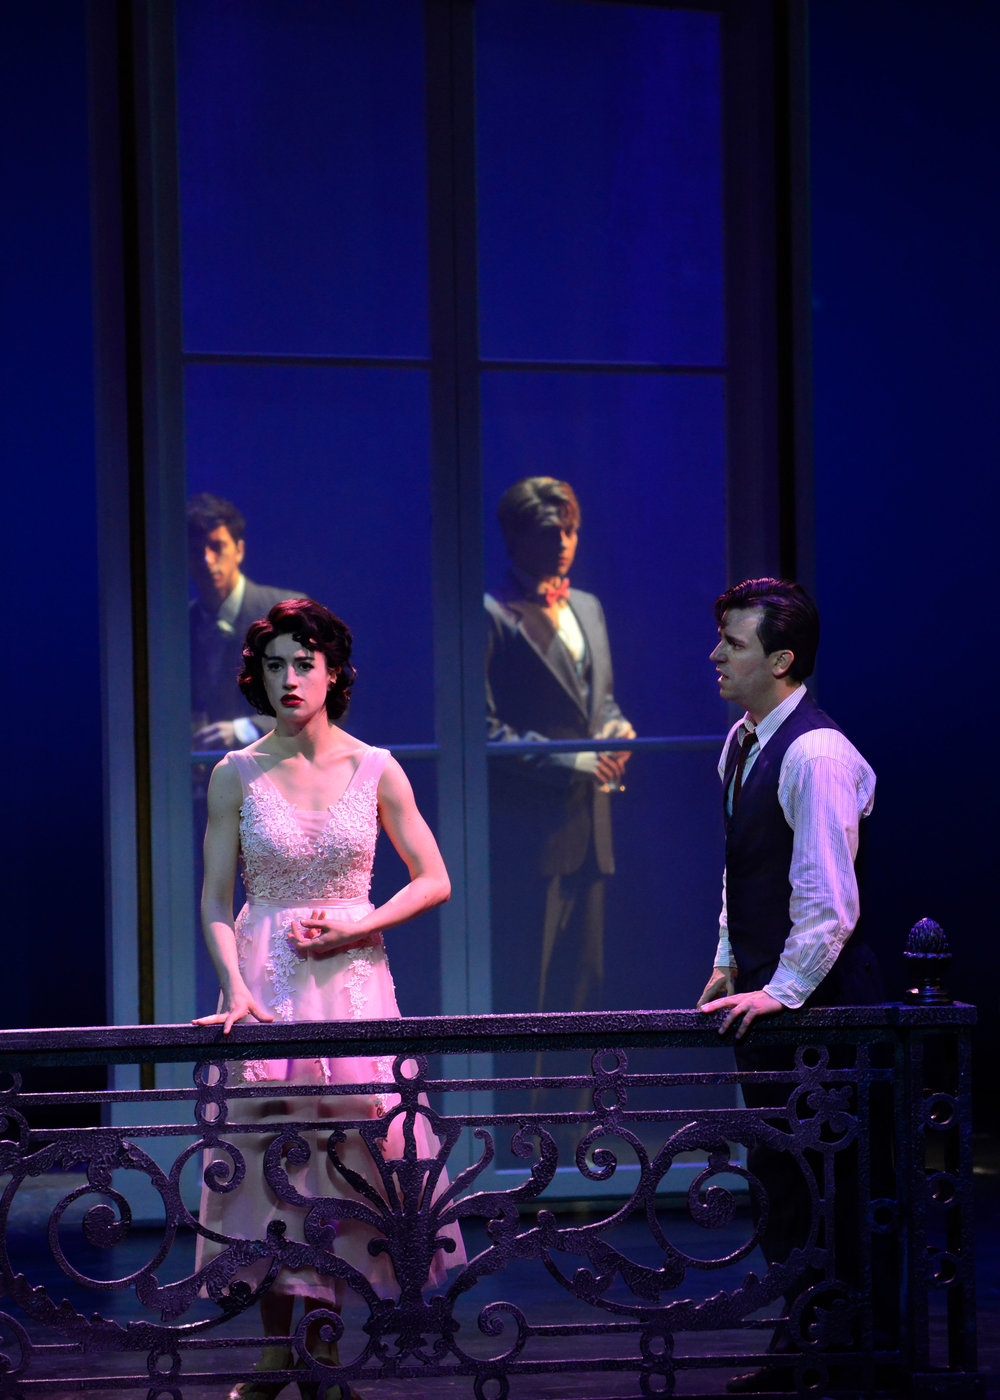 Jeremy Greenbaum, Julie Eicher, Stephen Brower, and Clyde Alves in the 2018 production of An American in Paris. Photo by Gary Ng.